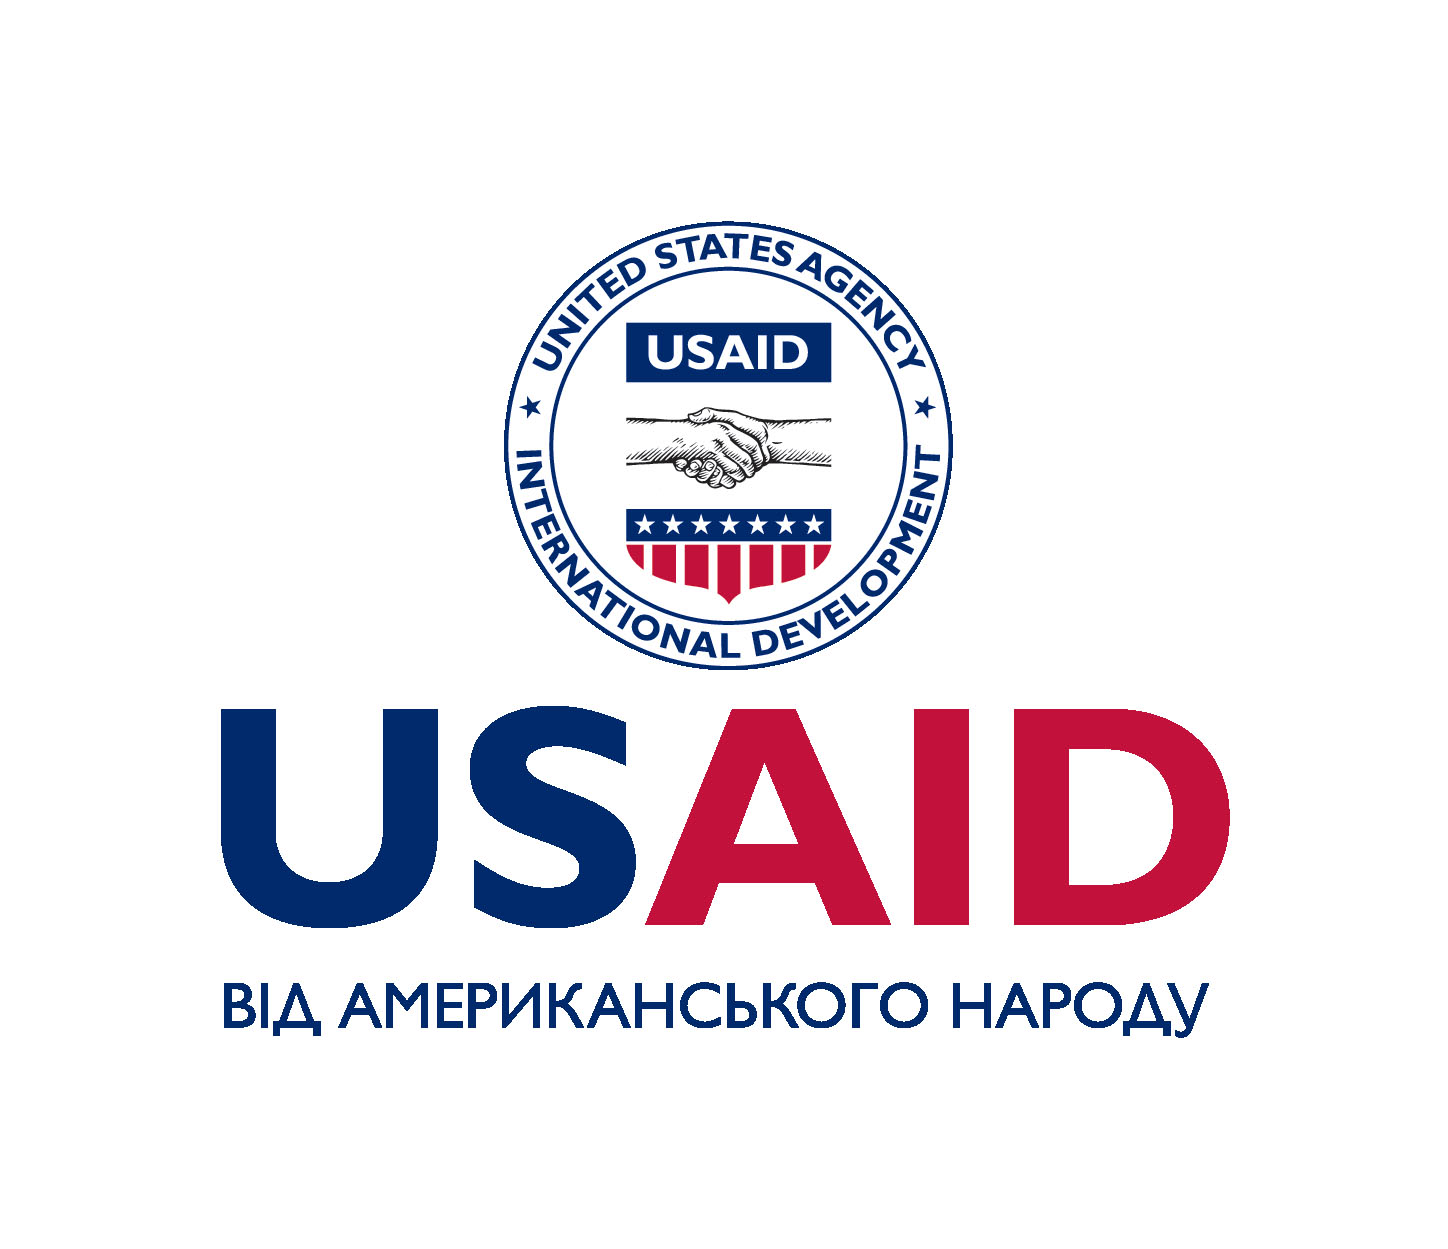 USAID